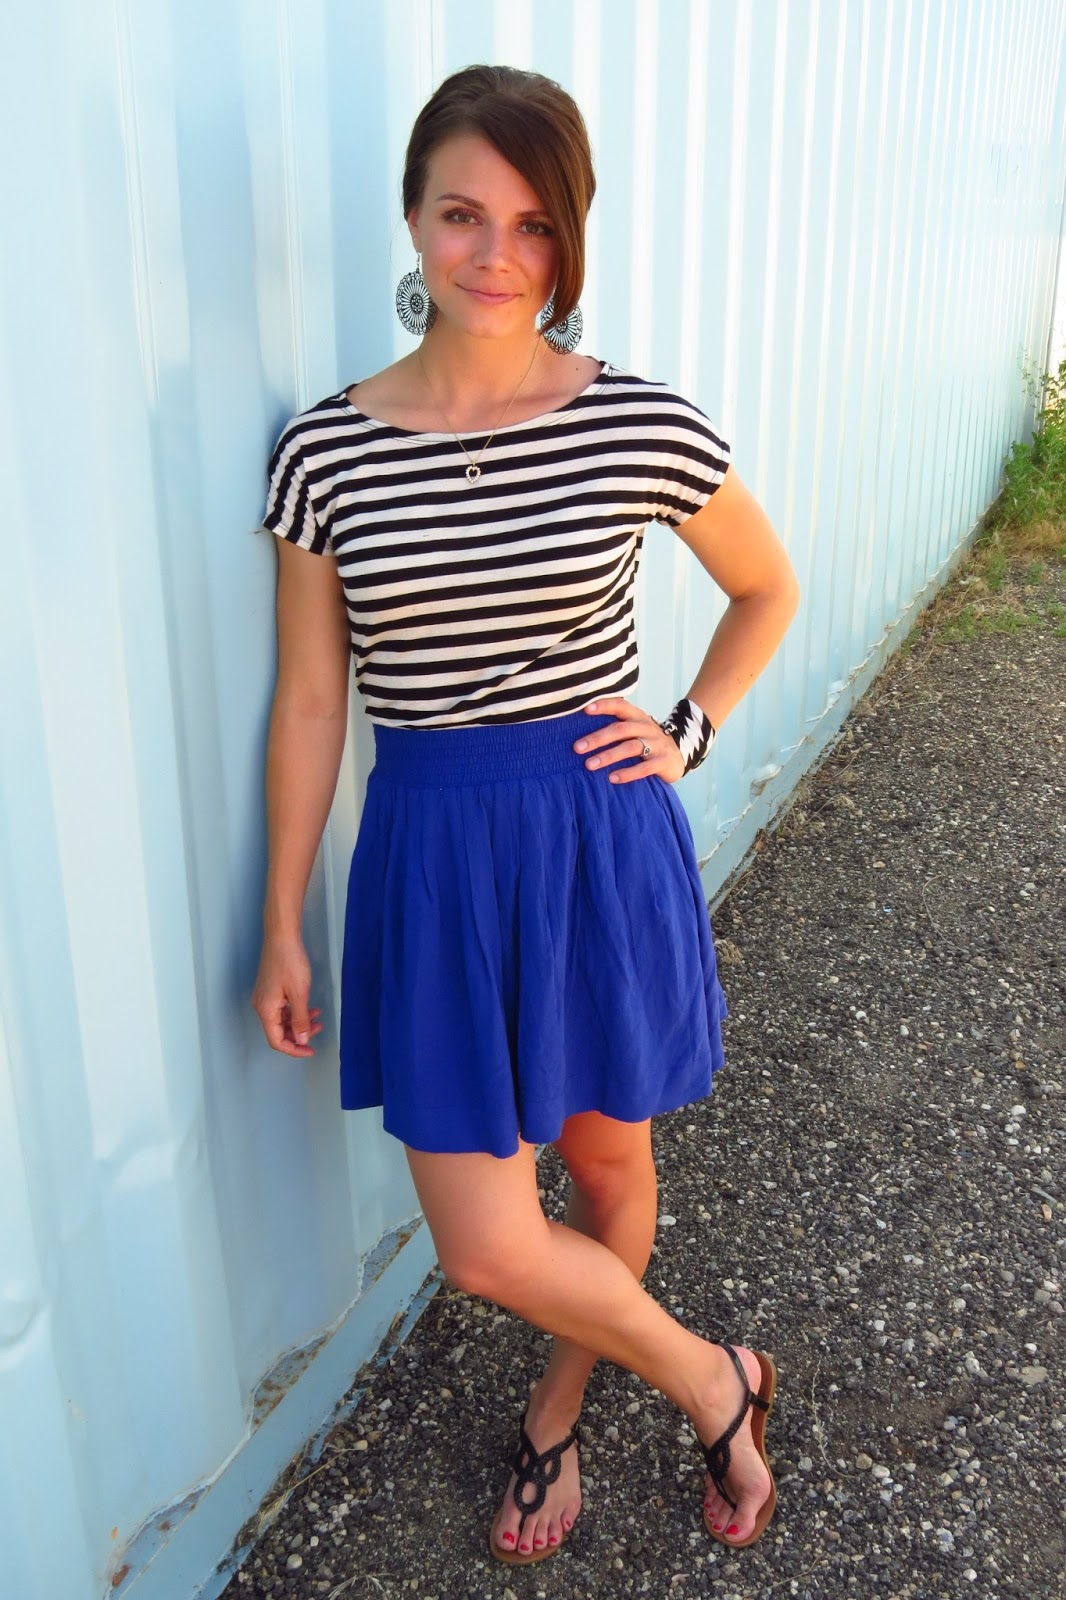 striped top and high-waisted skirt